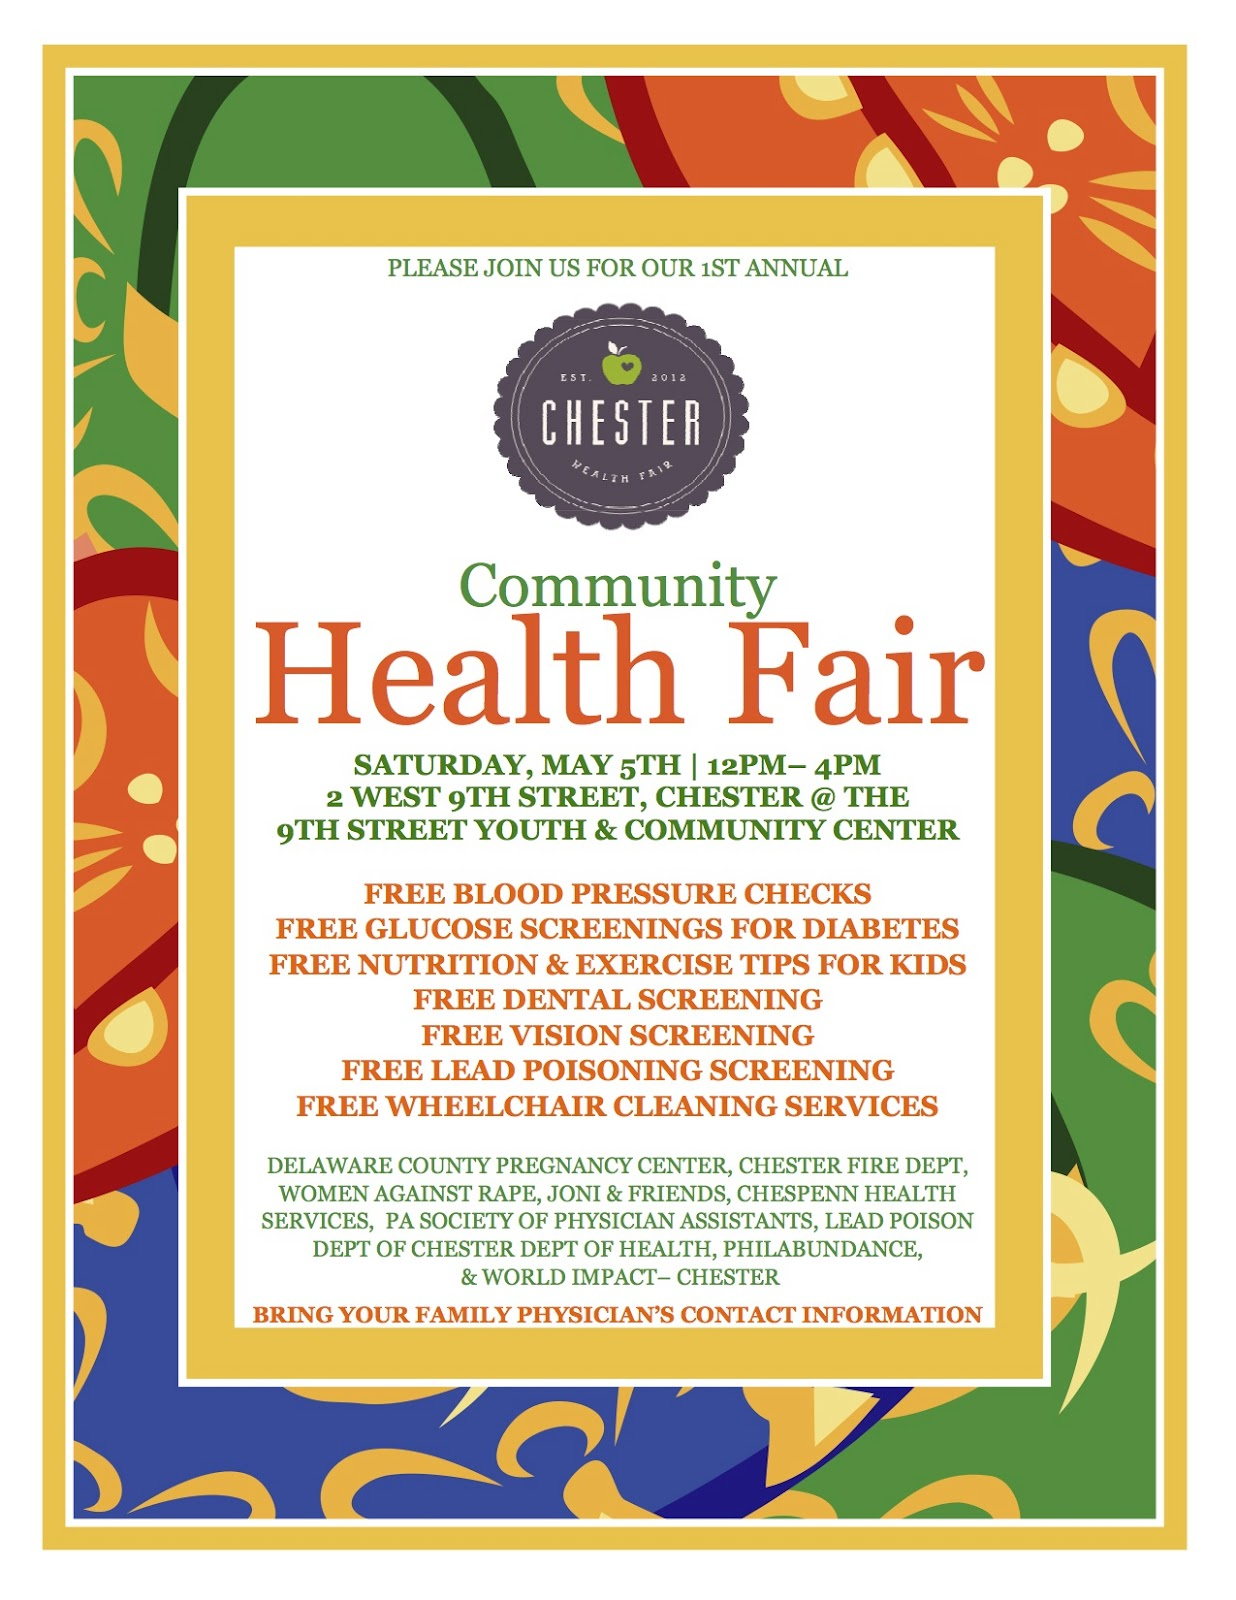 The Chester City Blog: Chester Health Fair May 5th